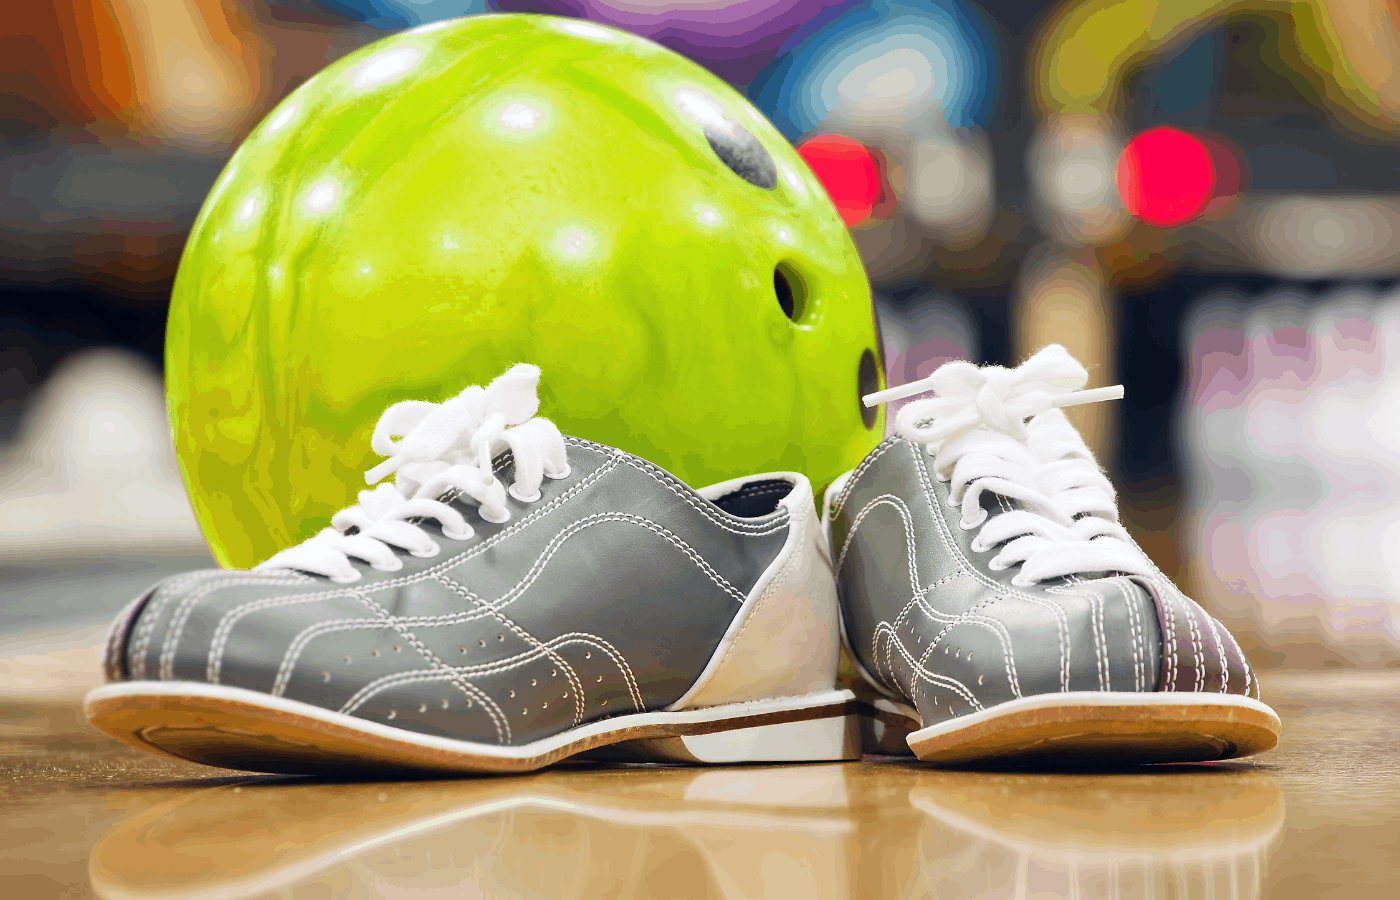 why do bowling shoes have no grip